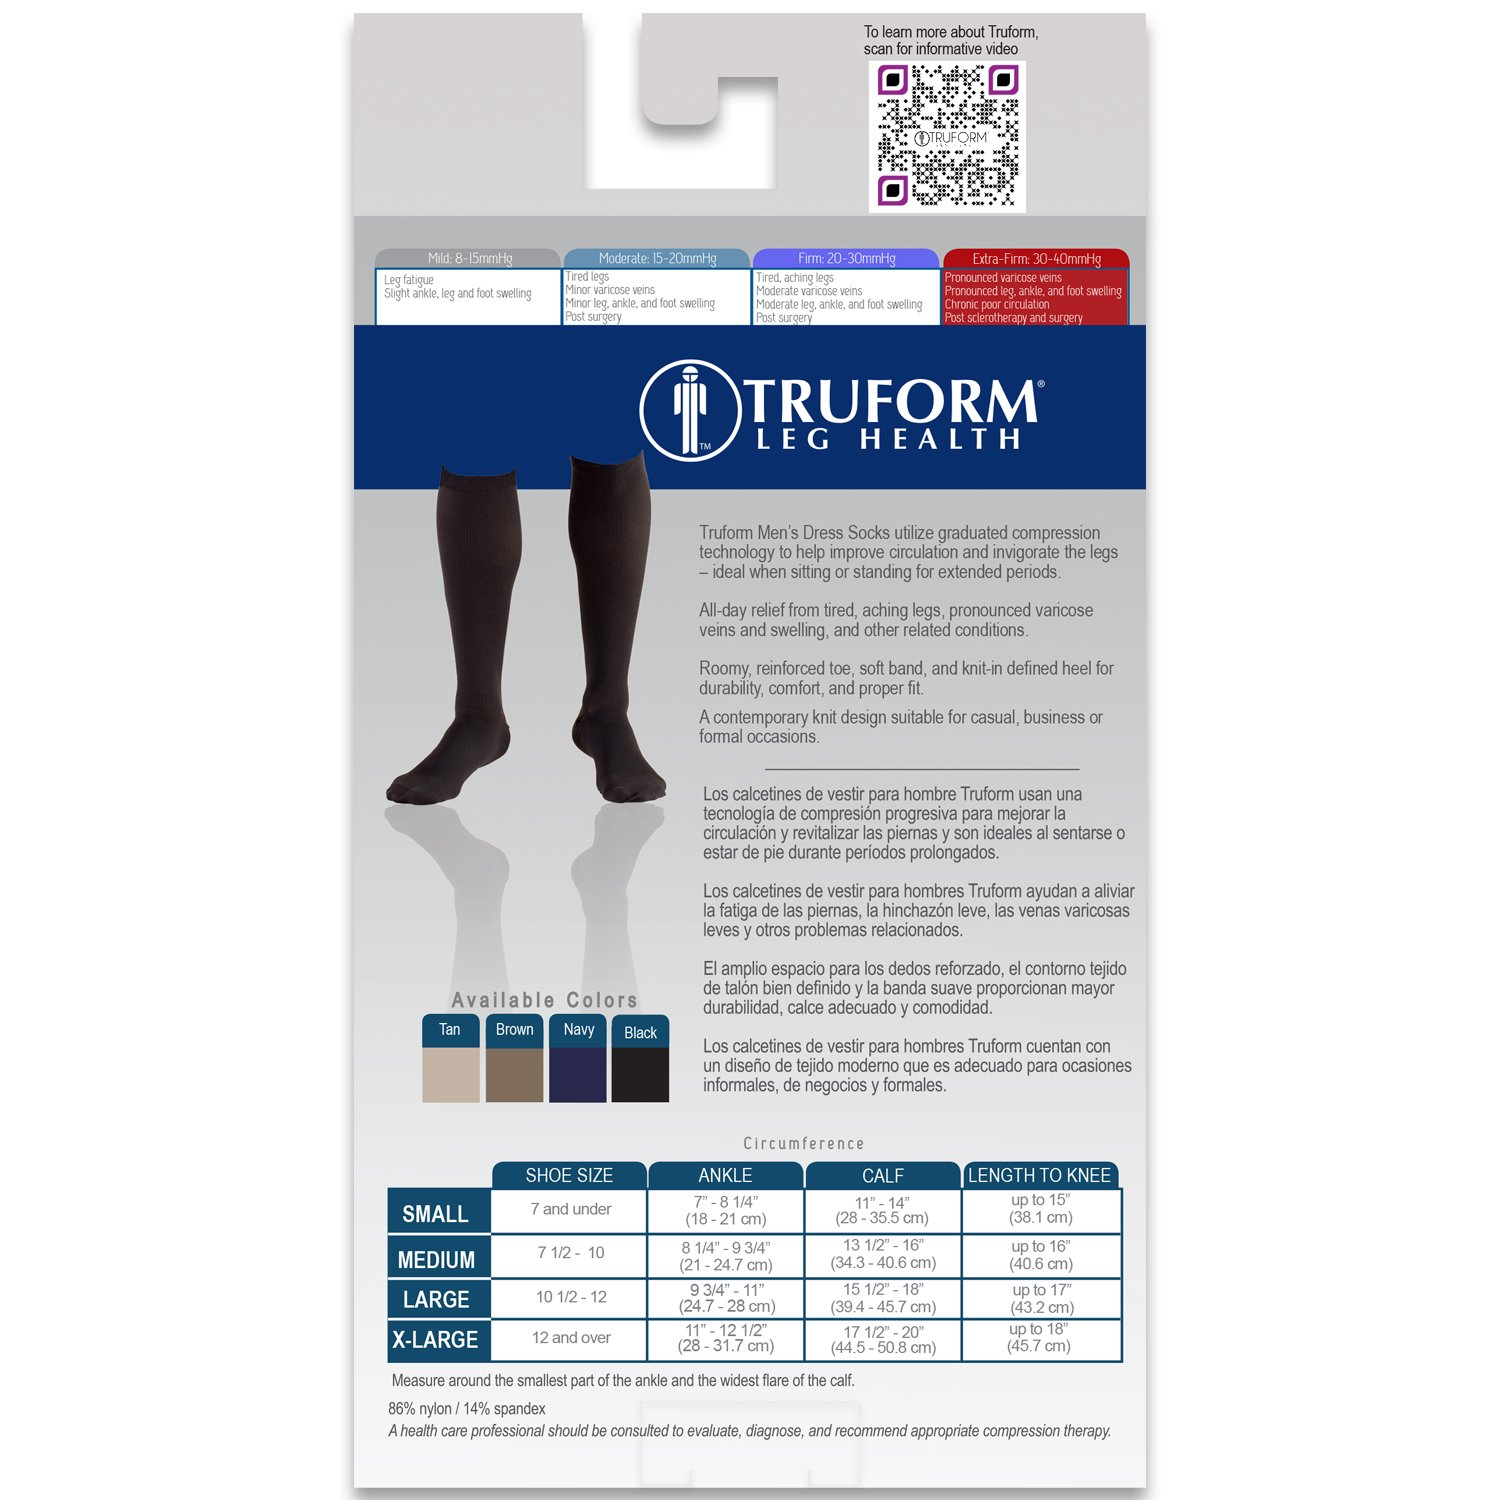 Amazon.com: Truform Compression 30-40 Mmhg Knee High Dress Style Socks Navy, Small, 2 Count: Health & Personal Care